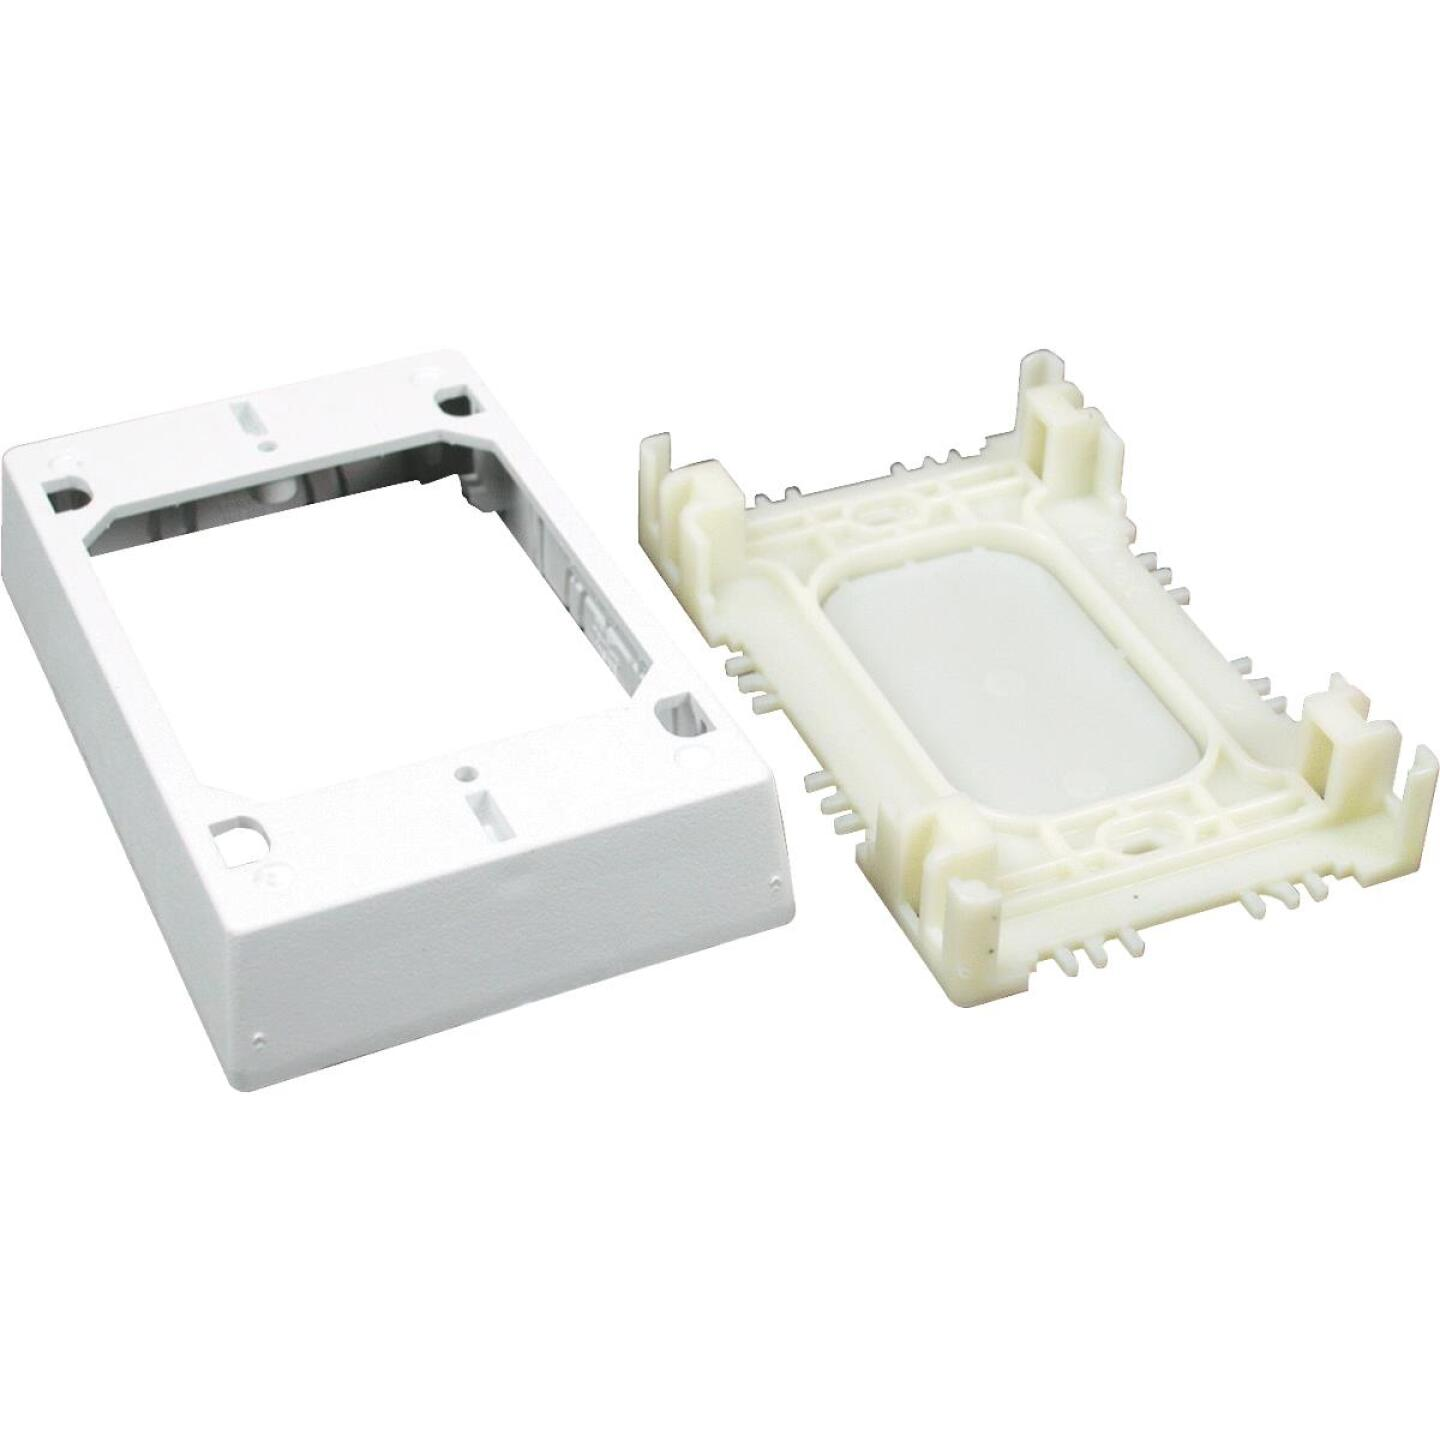 Wiremold White Plastic 1 In. Switch/Outlet Box Image 1